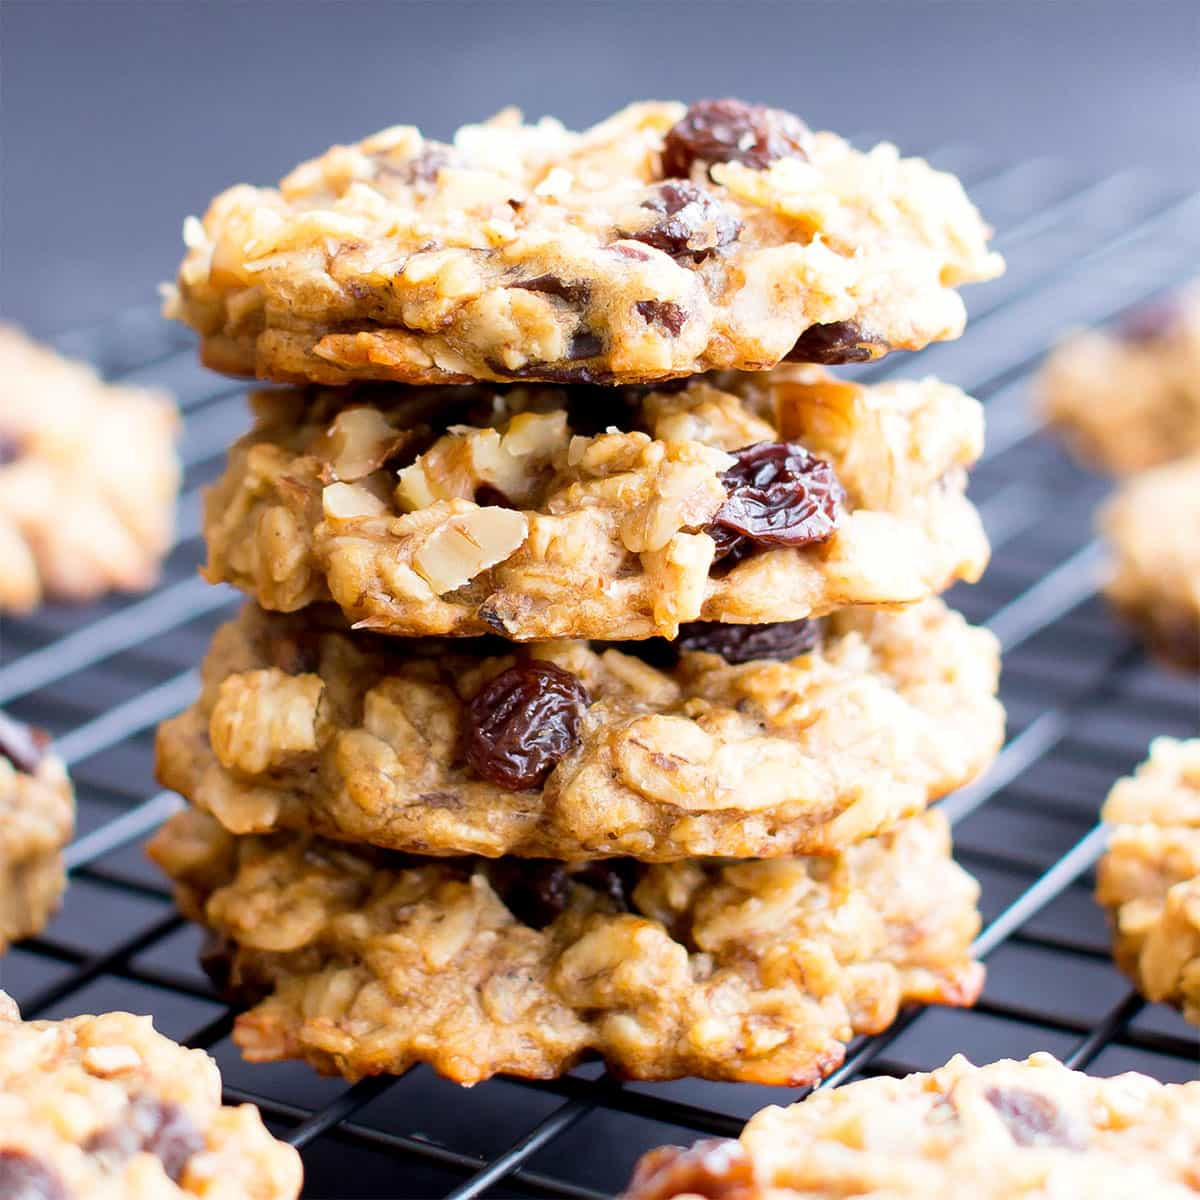 Easy Vegan Peanut Butter Banana Breakfast Cookies Gluten Free V Df One Bowl